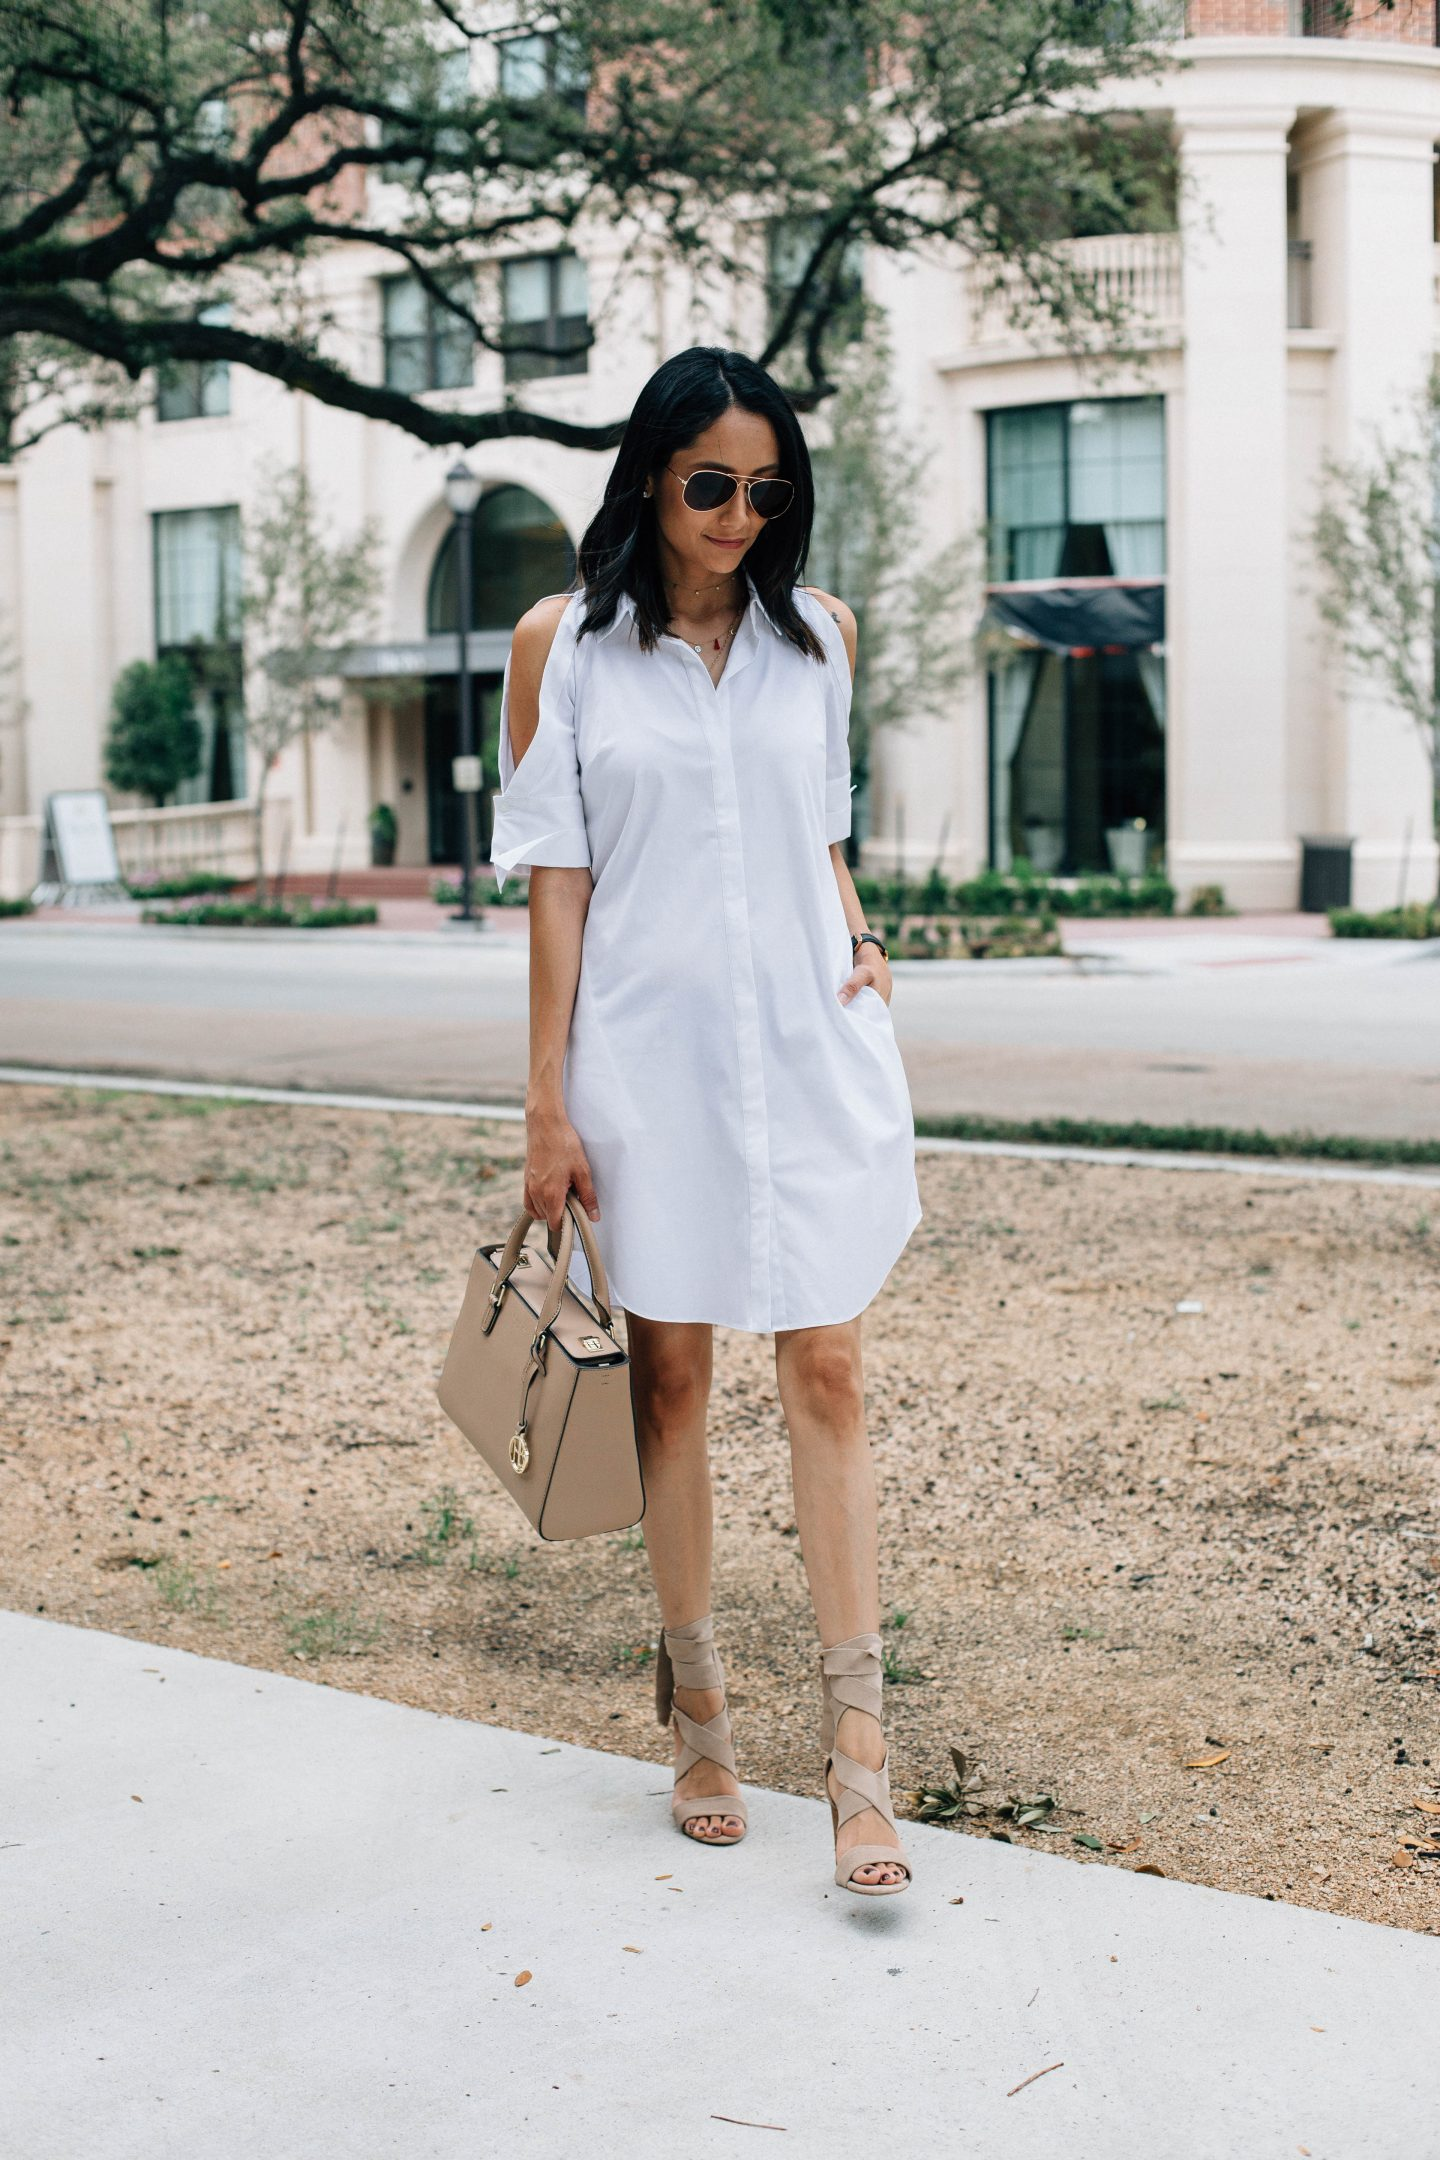 An Easy Way to Style A White Dress This Summer